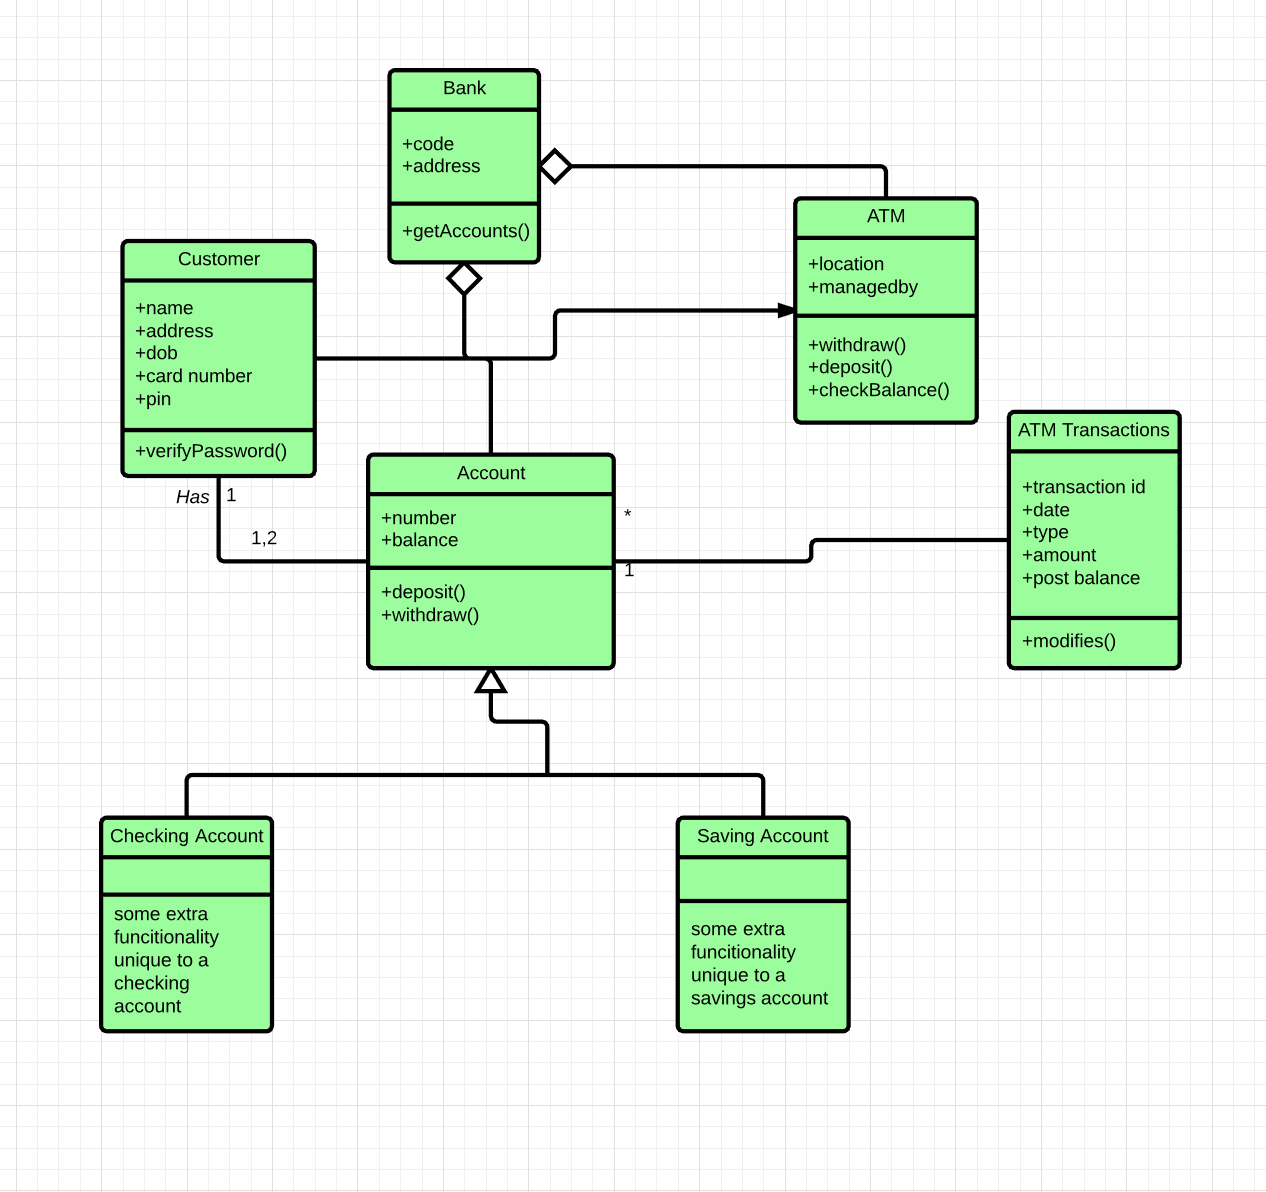 Class Diagram for Banking System